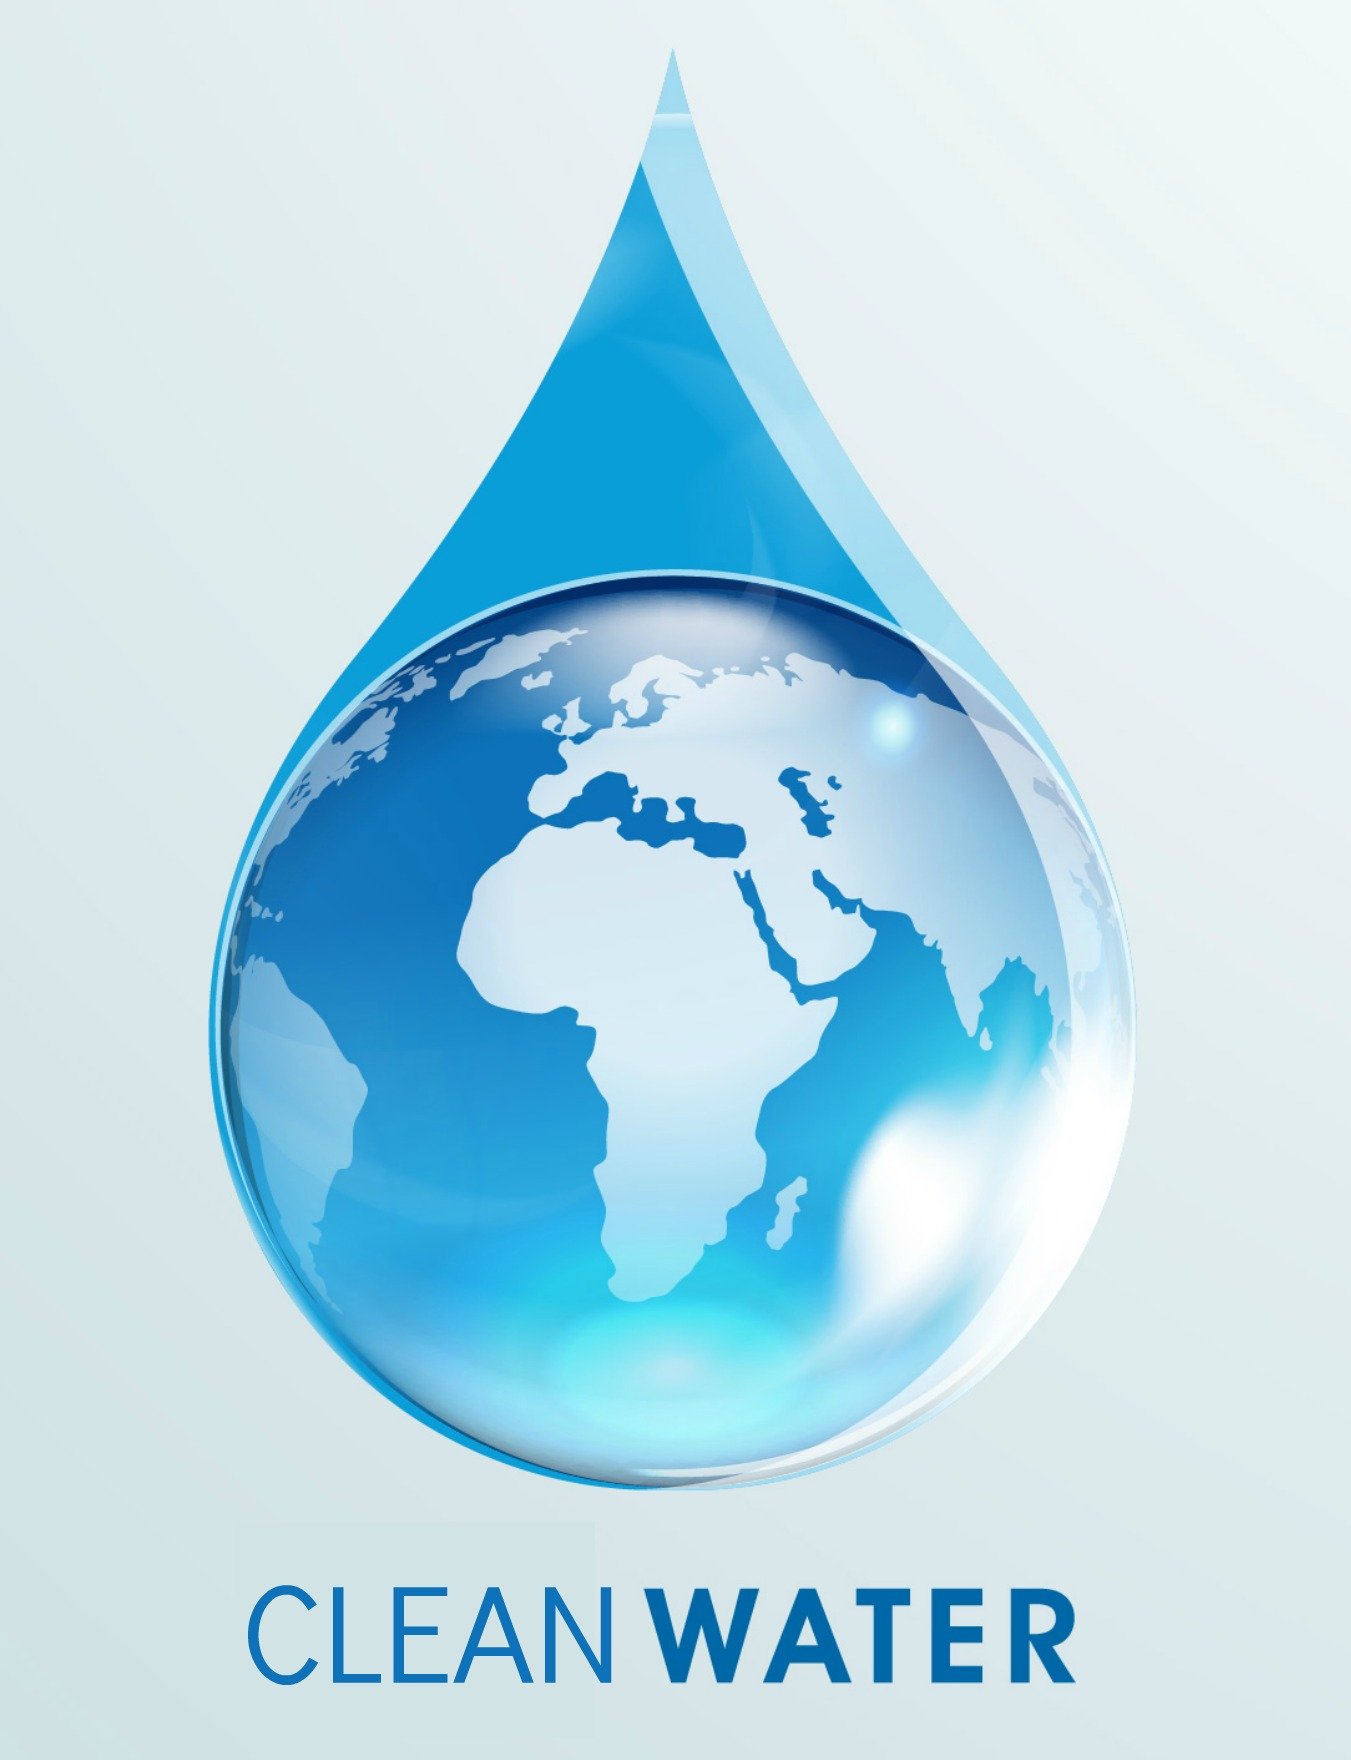 clean water for world.jpg